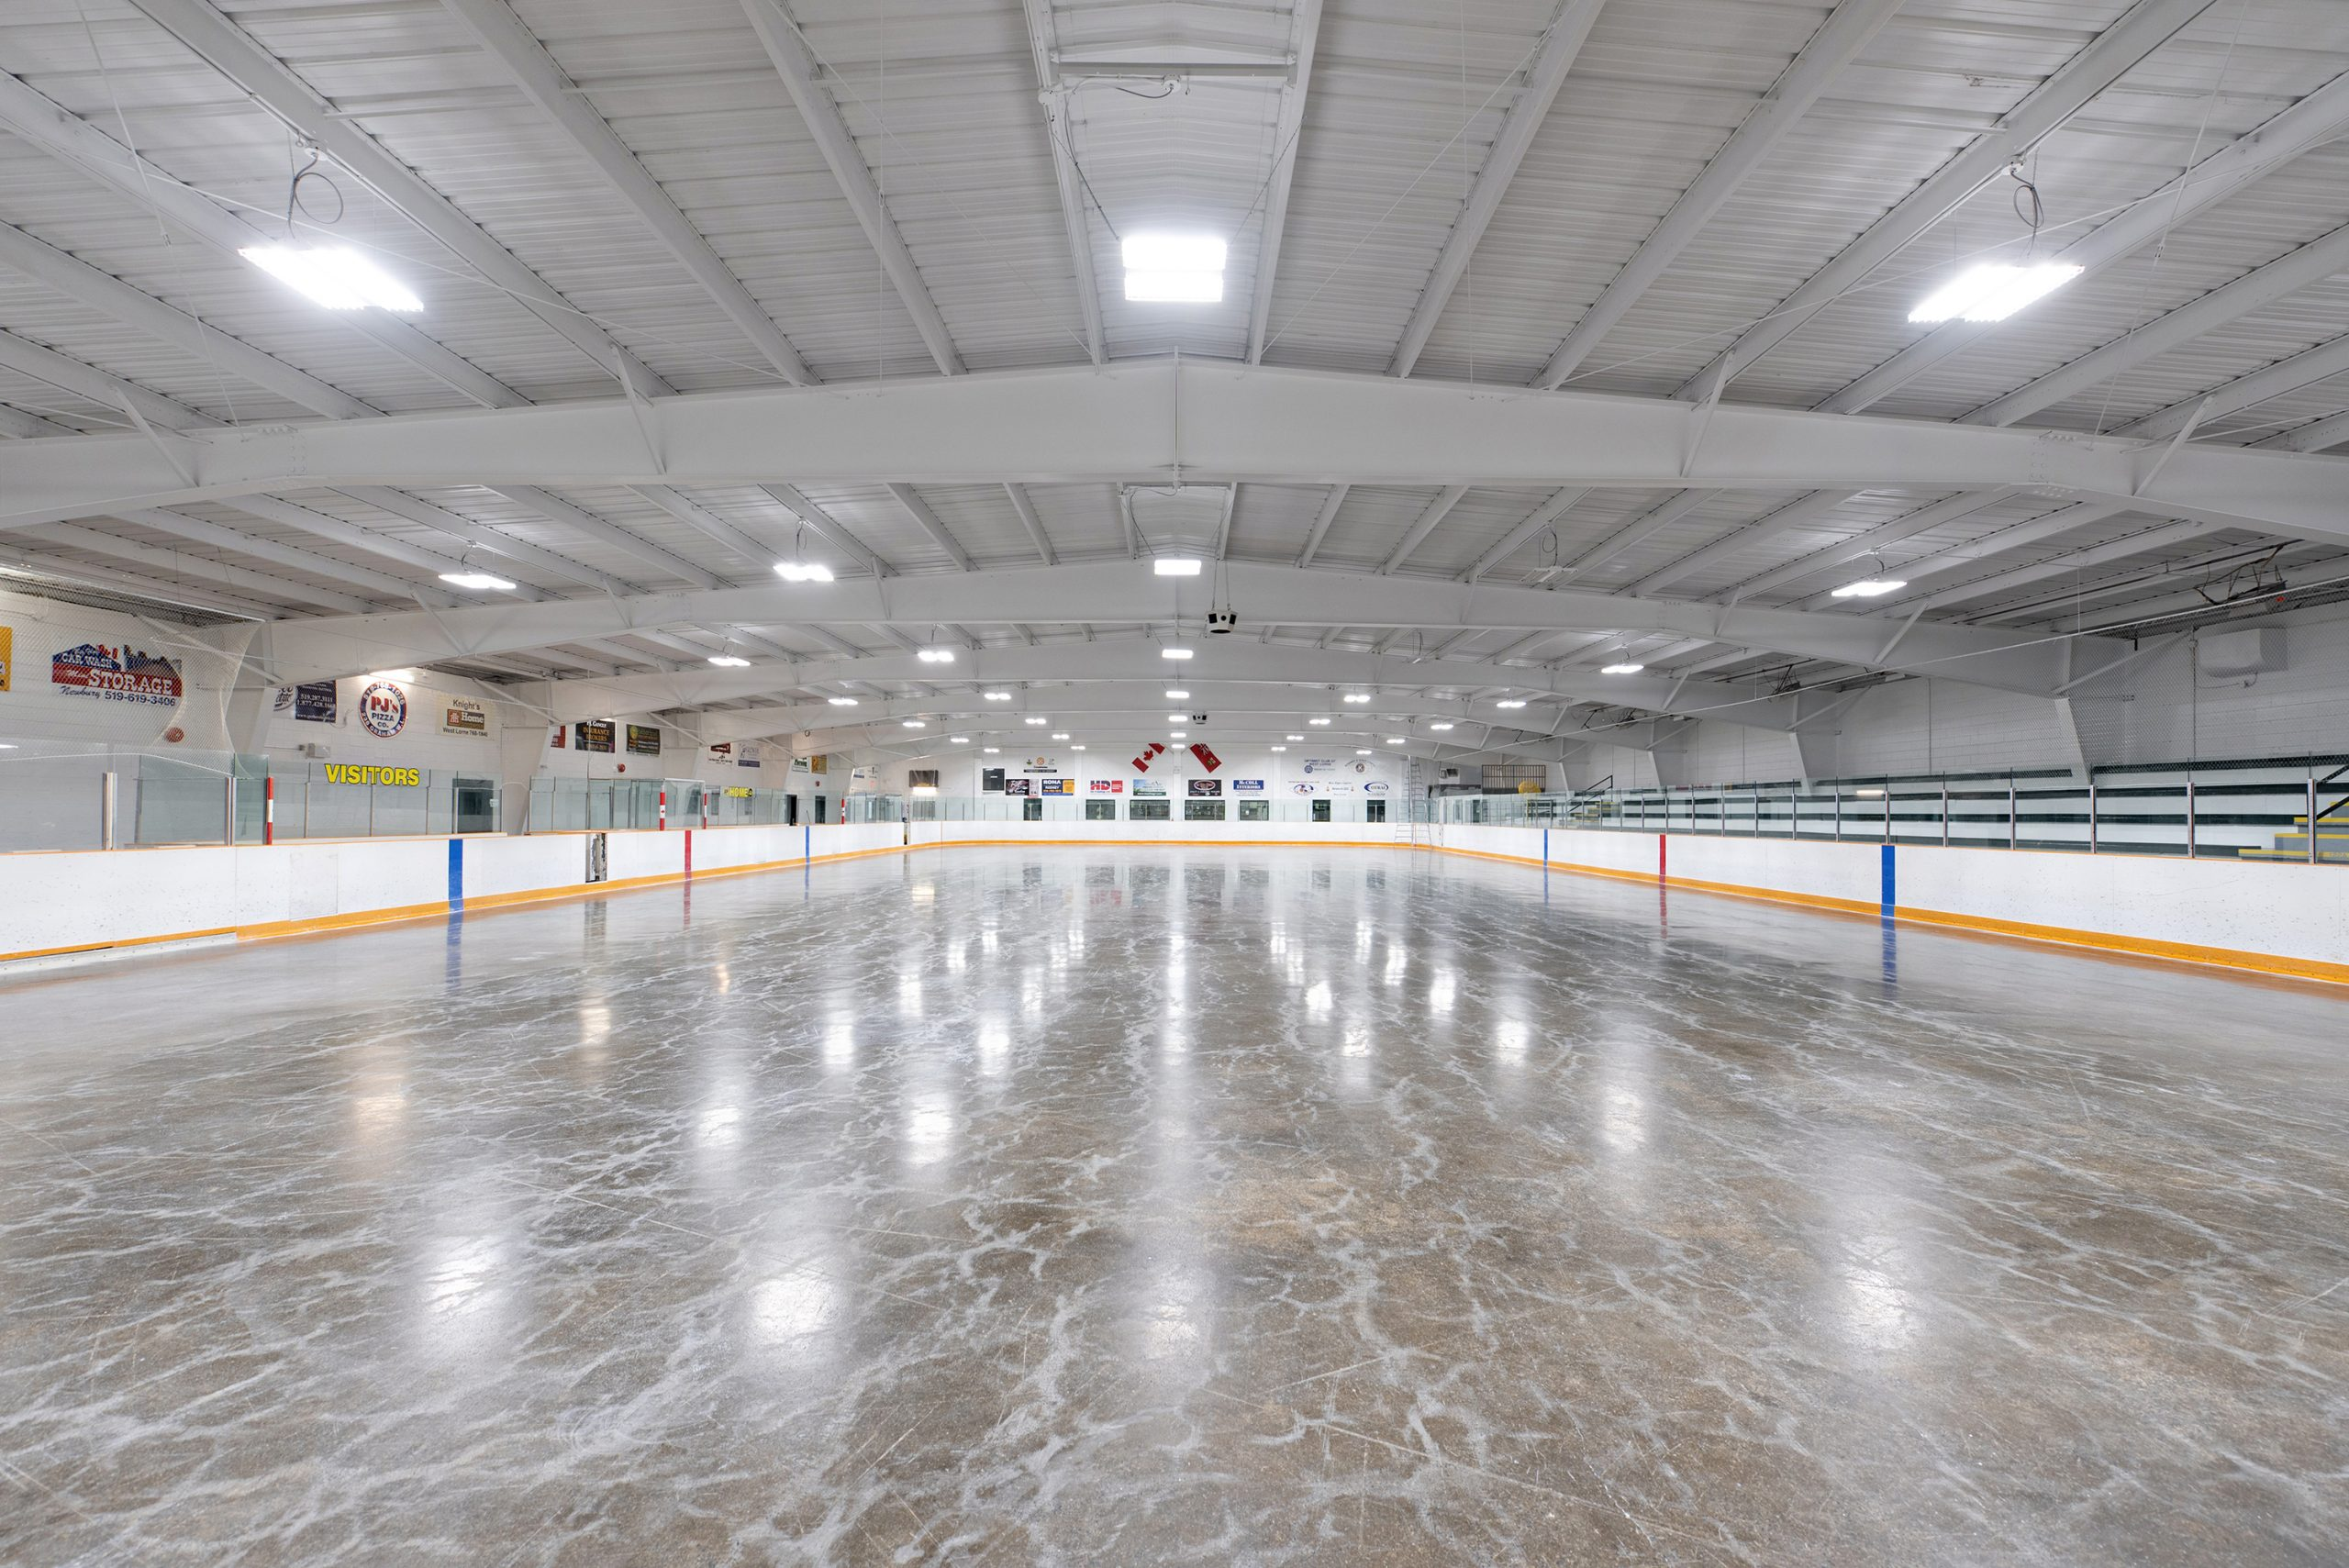 HD Commercial Maintenance Painting: West Elgin Arena